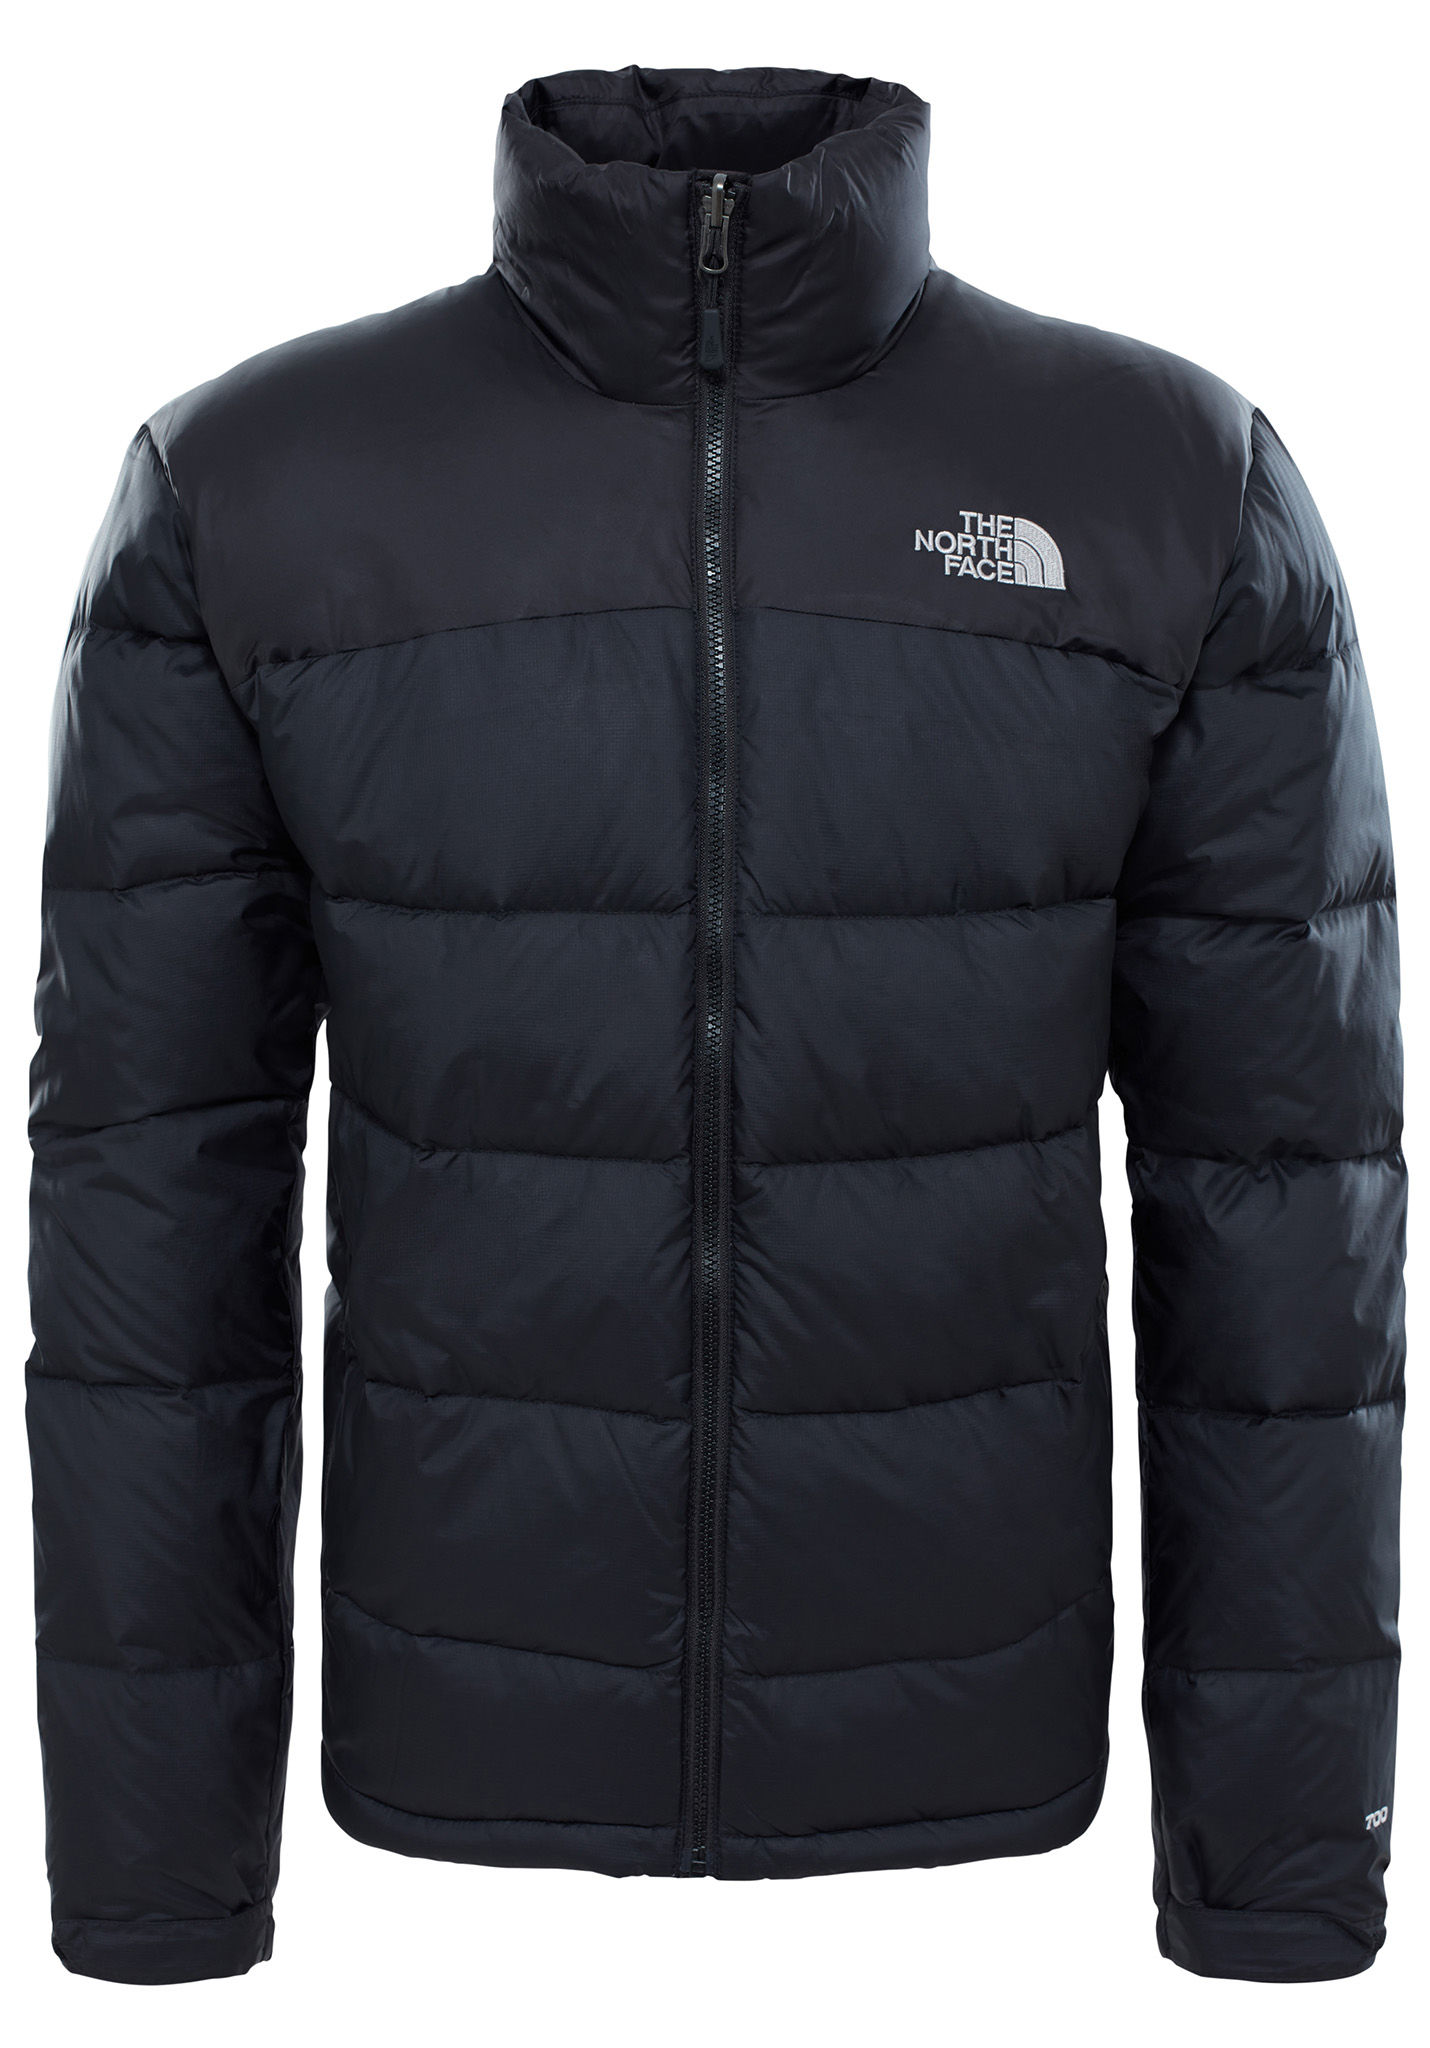 THE NORTH FACE Nuptse 2 - Funktionsjacke für Herren - Schwarz - Planet  Sports 18fac4d0b